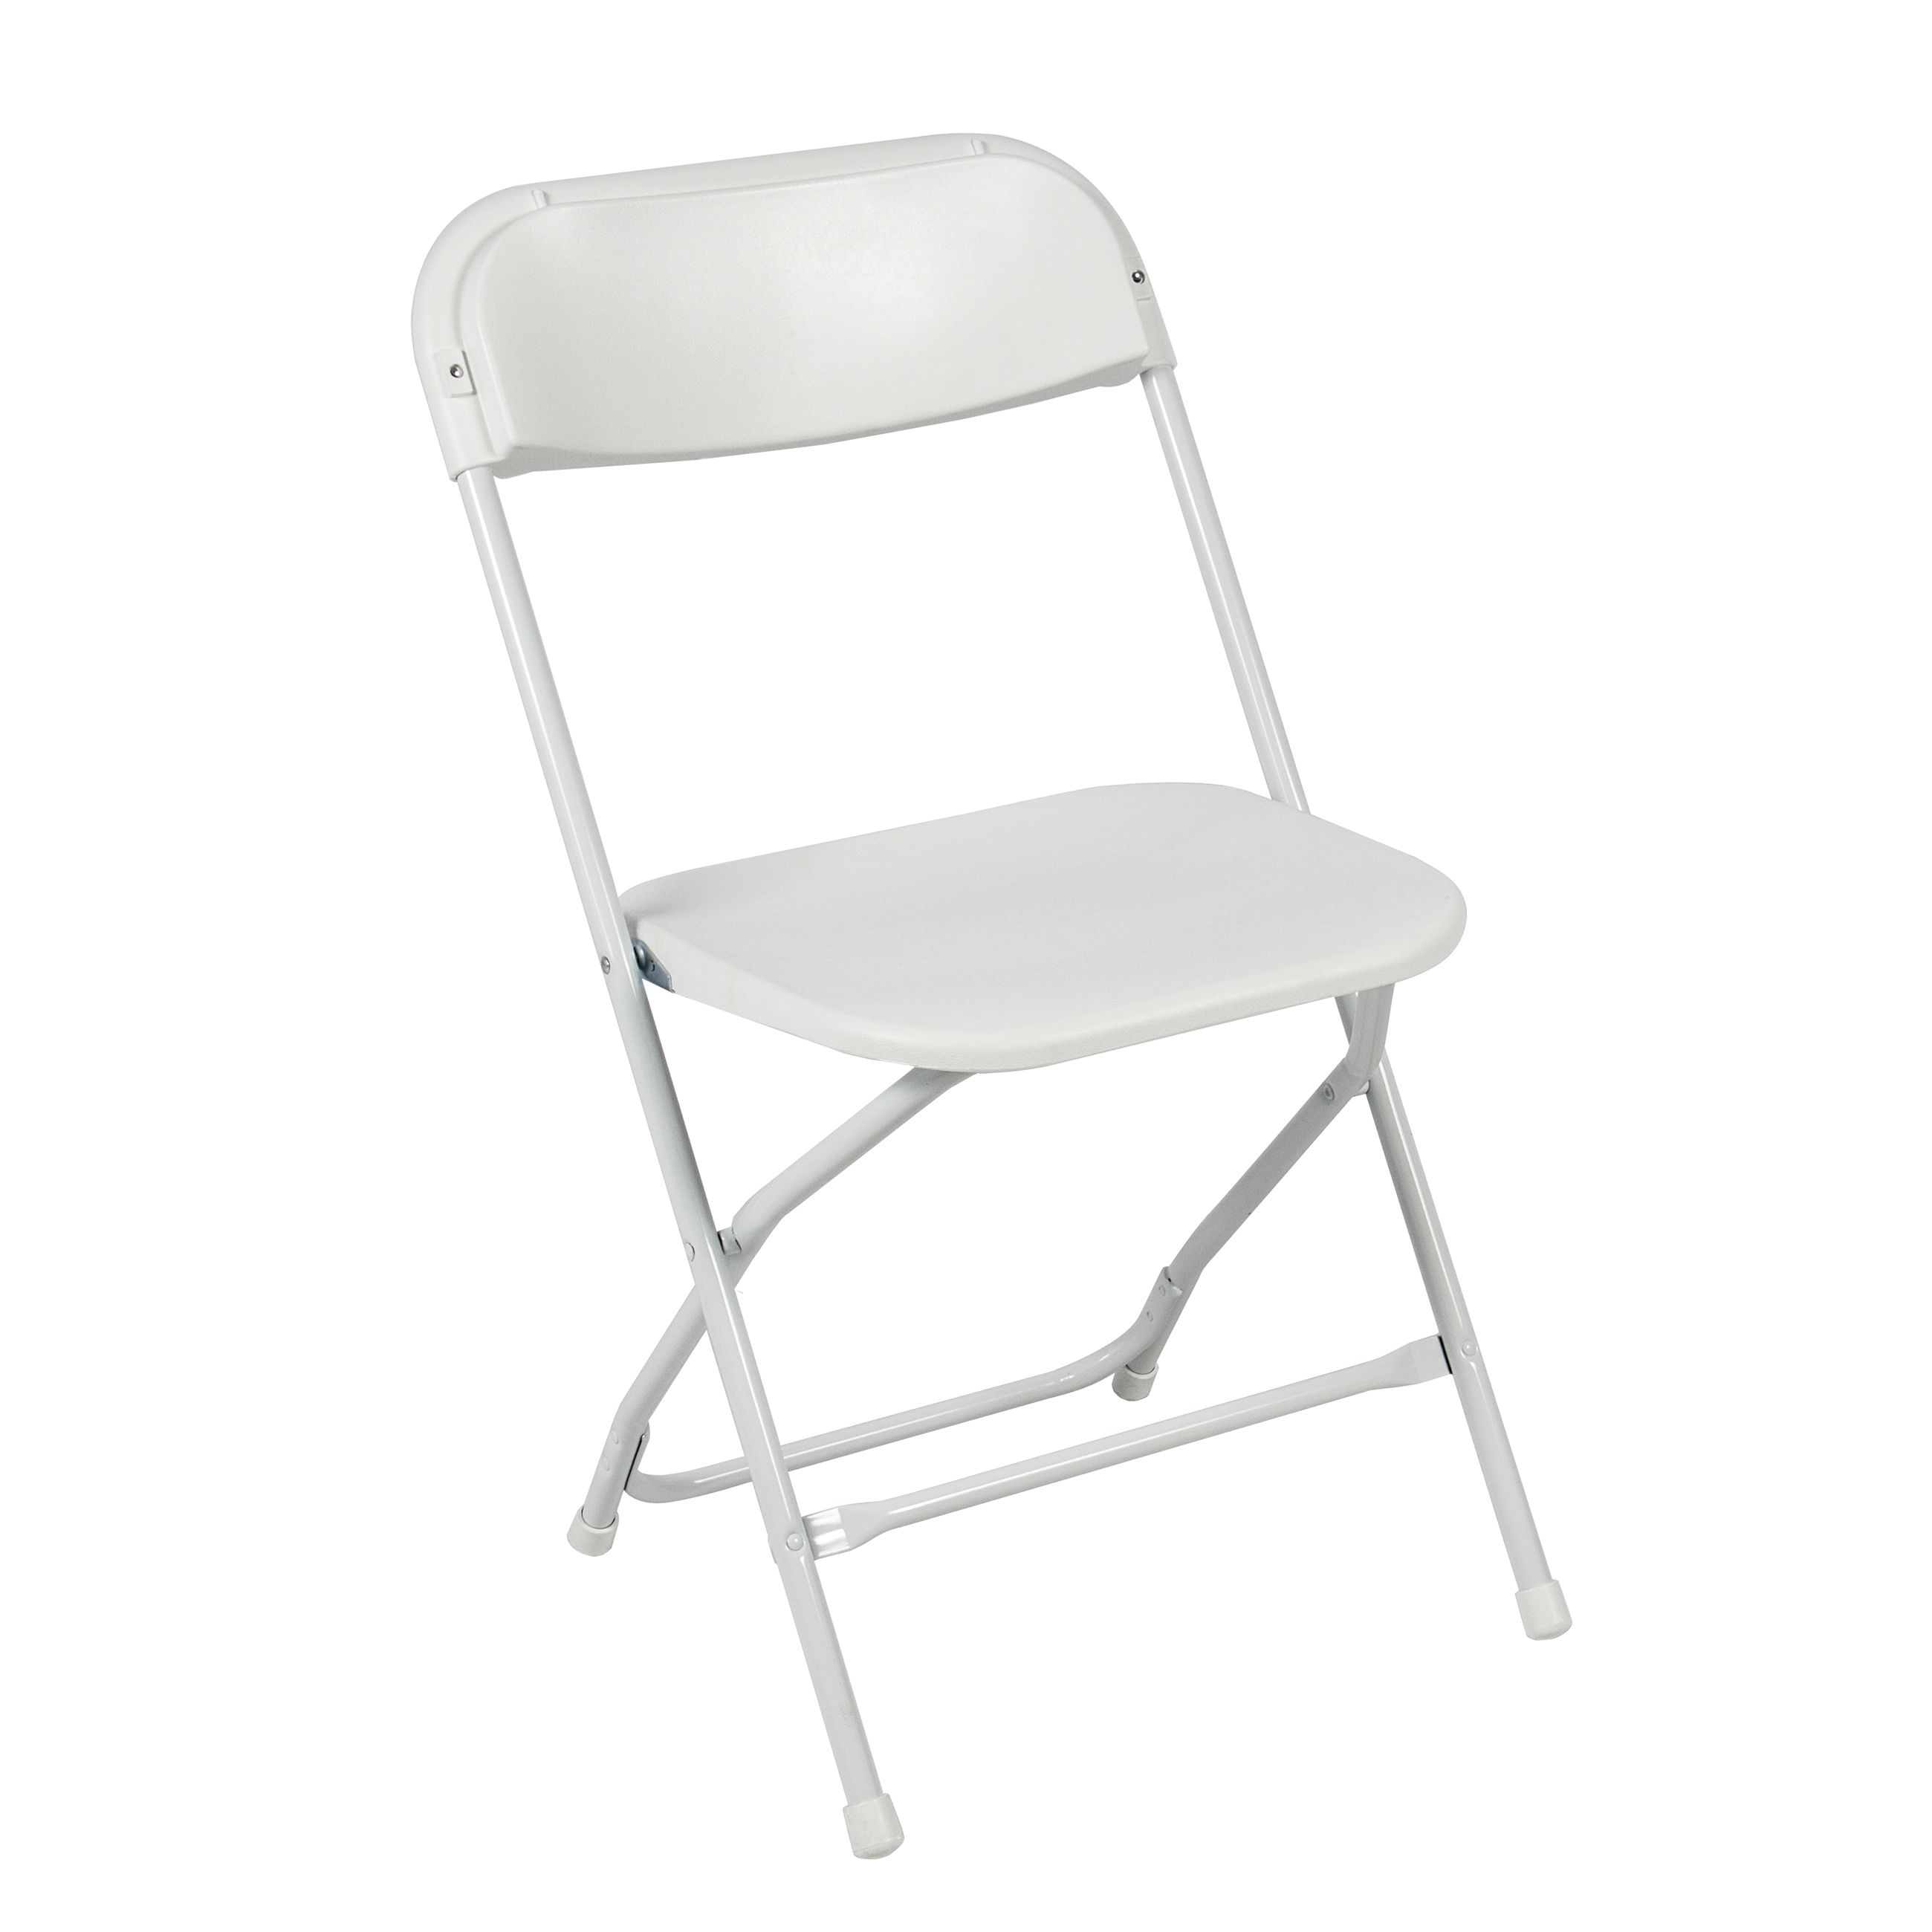 (5) Commercial White Plastic Folding Chairs Stackable